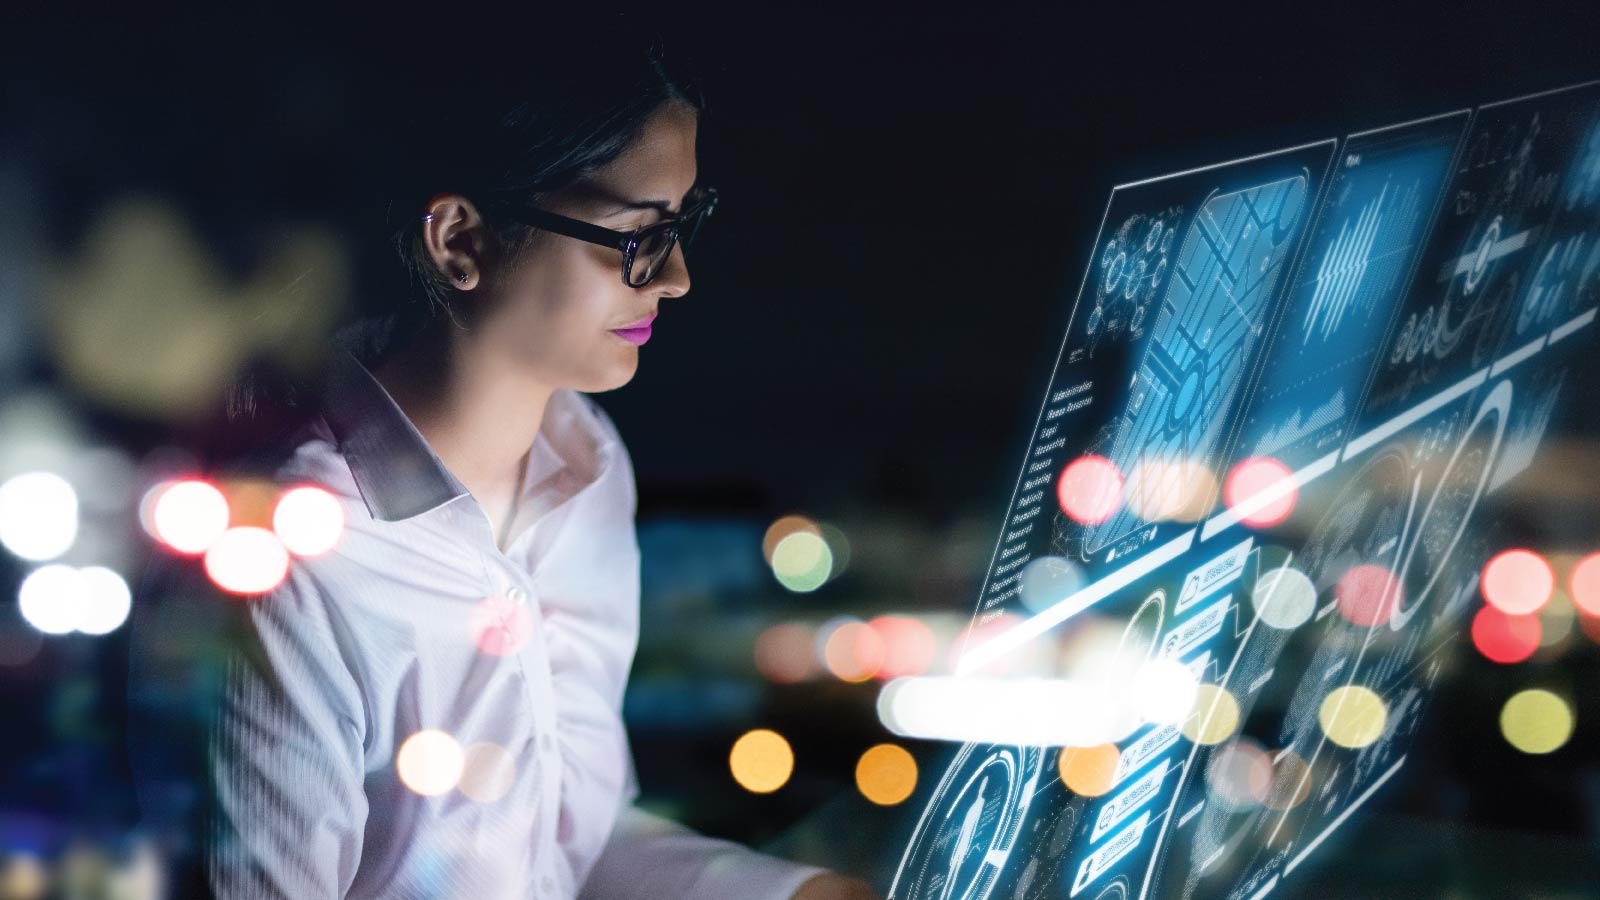 CIOs consider methods to accelerate post-pandemic strategy for digital transformation